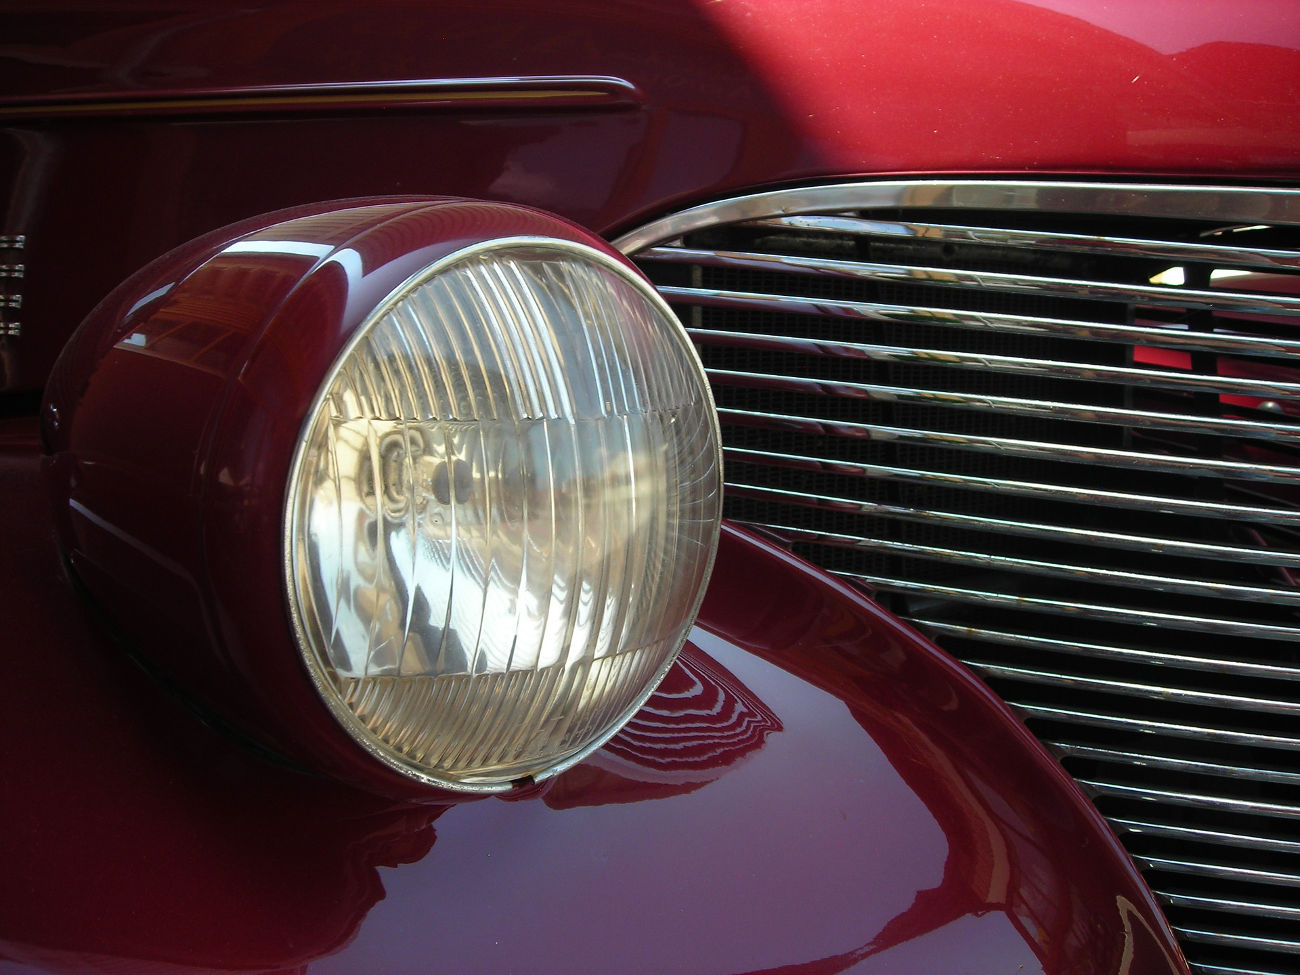 Vintage and classic motors festival - Mulhouse